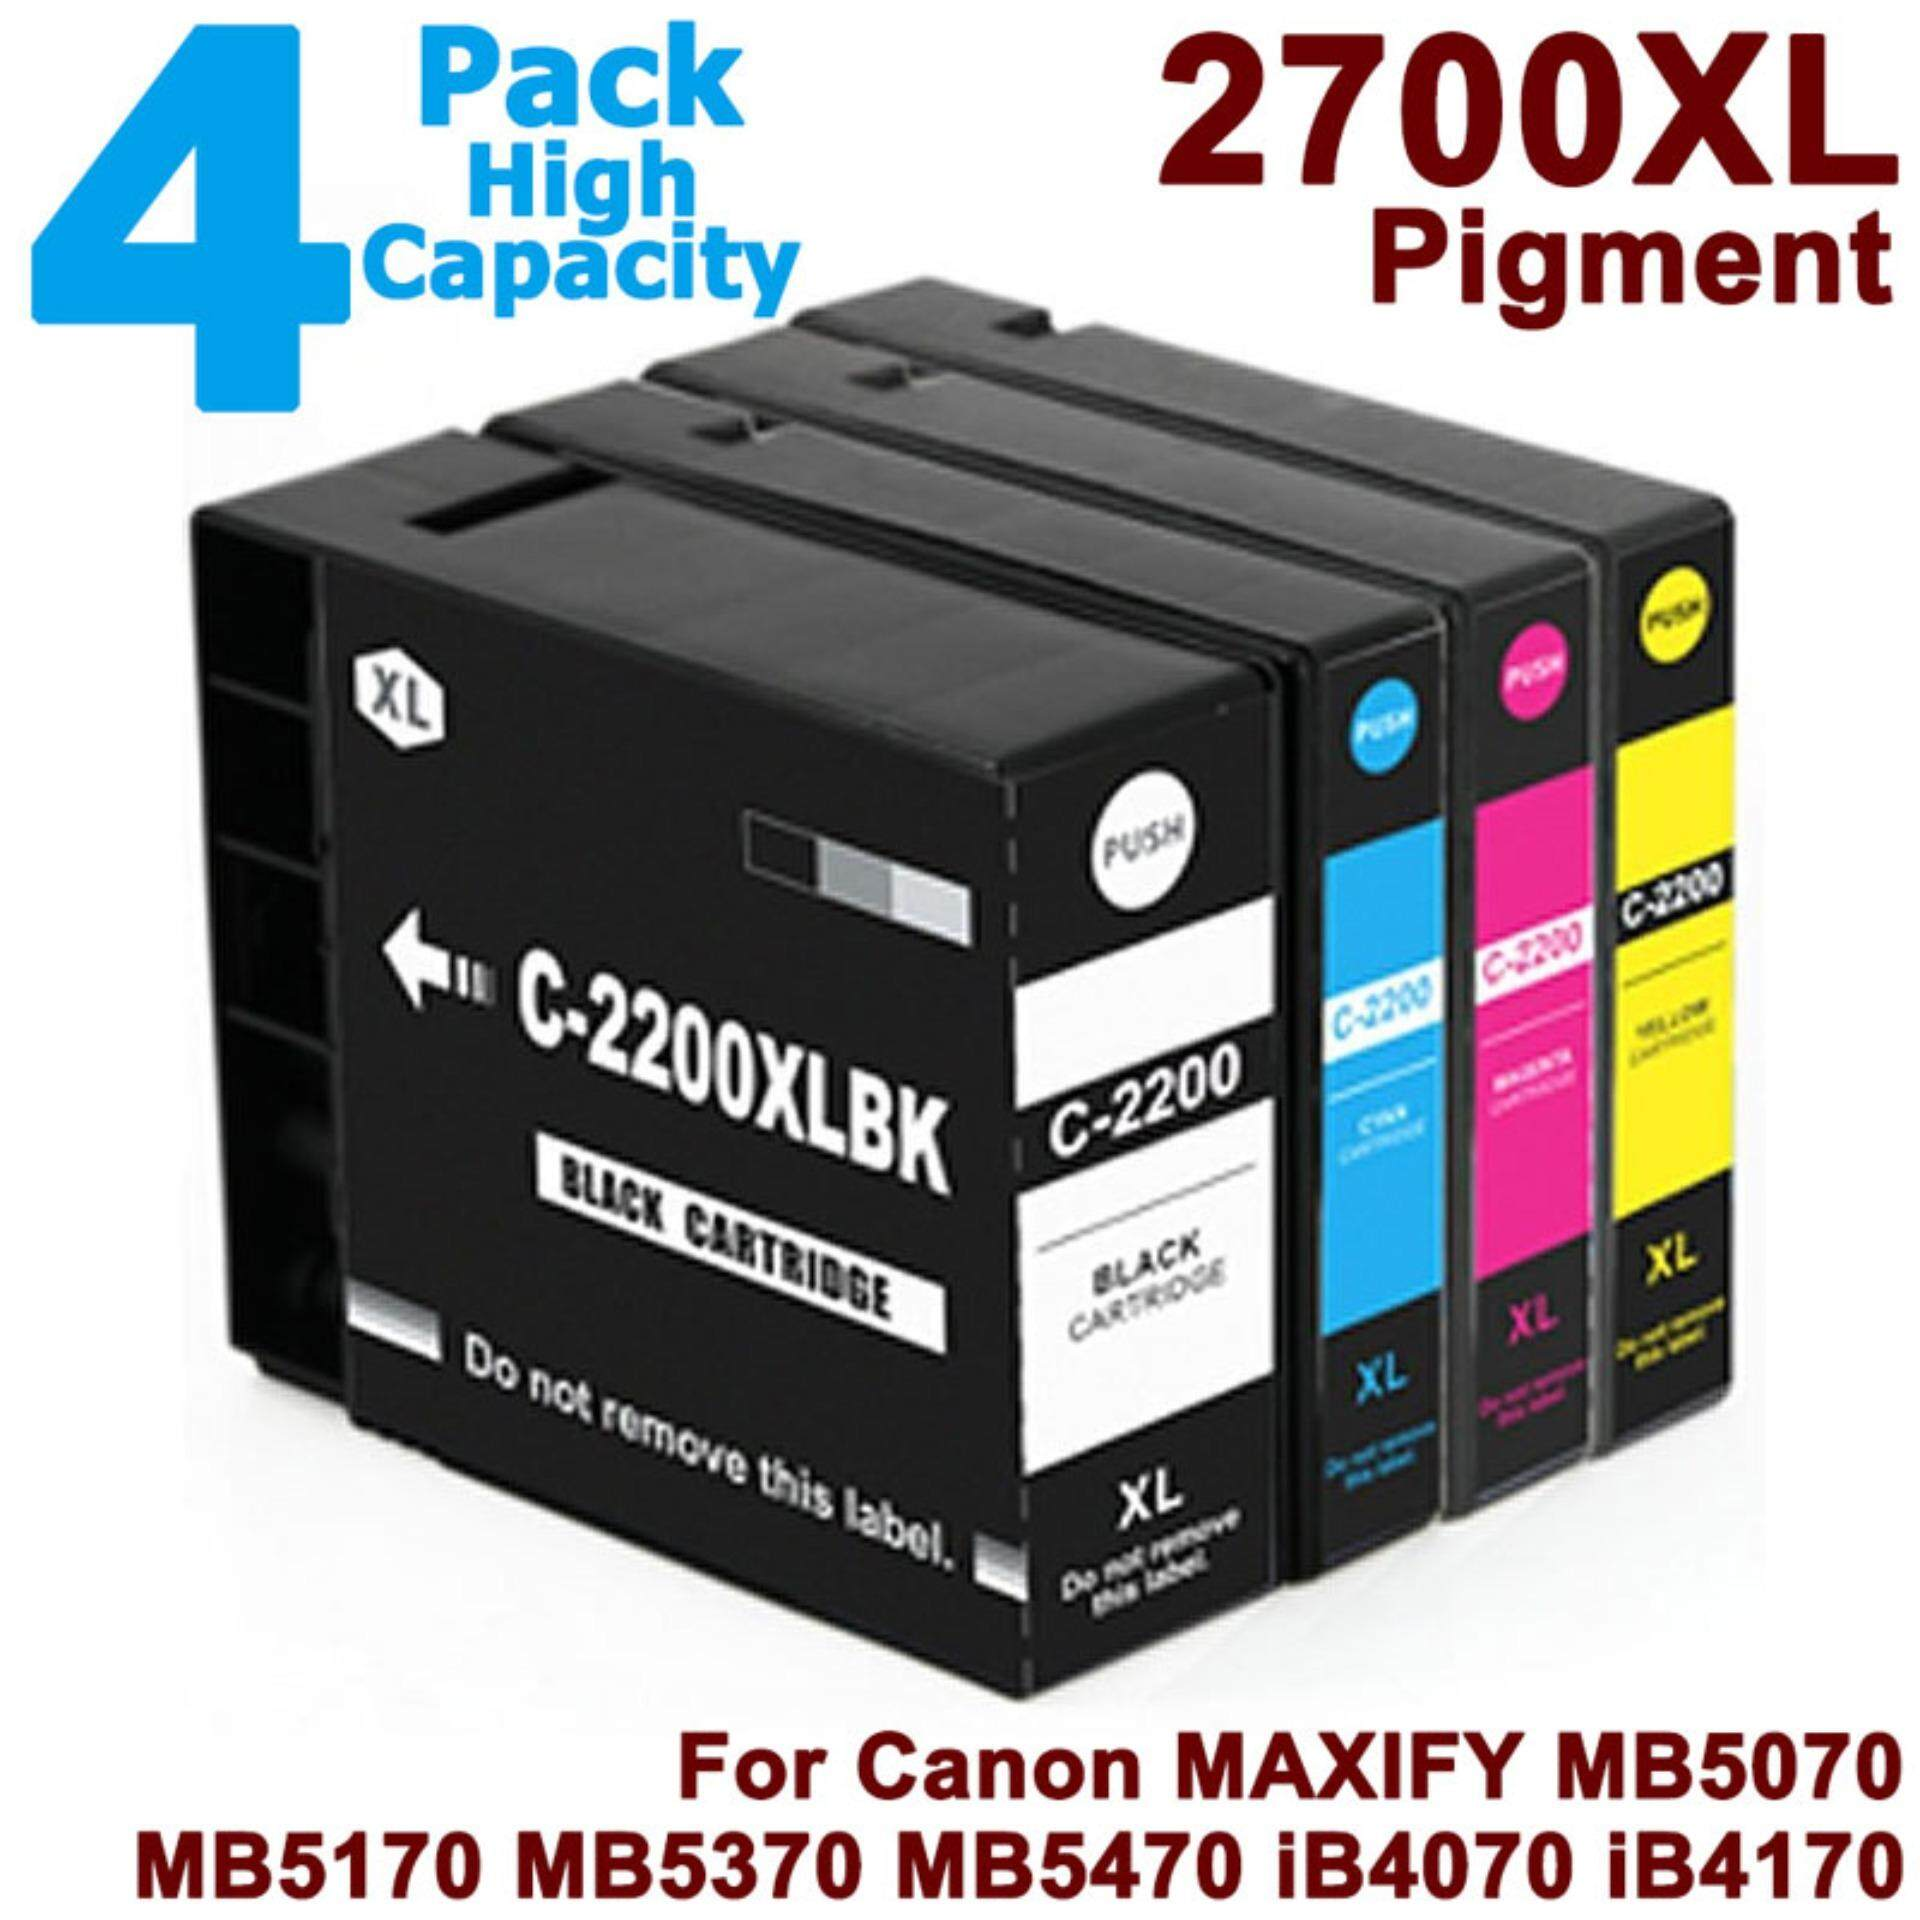 Buy Sell Cheapest Full Ink Cartridge Best Quality Product Deals Canon Cli 751 Yellow Xl Vileed 4 Pack Pgi 2700xl Bk C M Y For Set Print Pgi2700 2700 Pgi2700xl Black Cyan Magenta Replacement